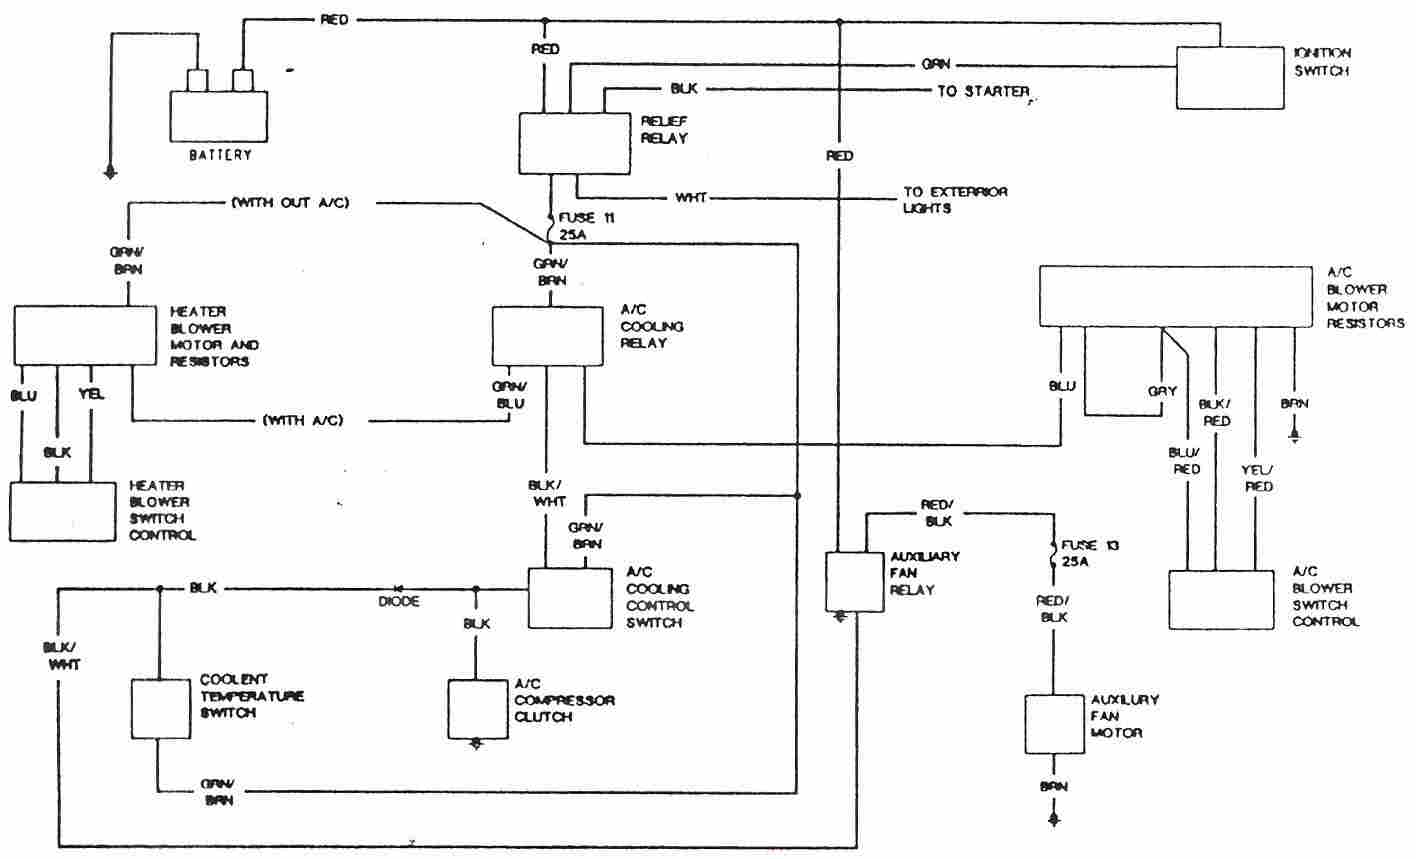 wiring diagram for car aircon wiring image wiring similiar air conditioner circuit diagram keywords on wiring diagram for car aircon